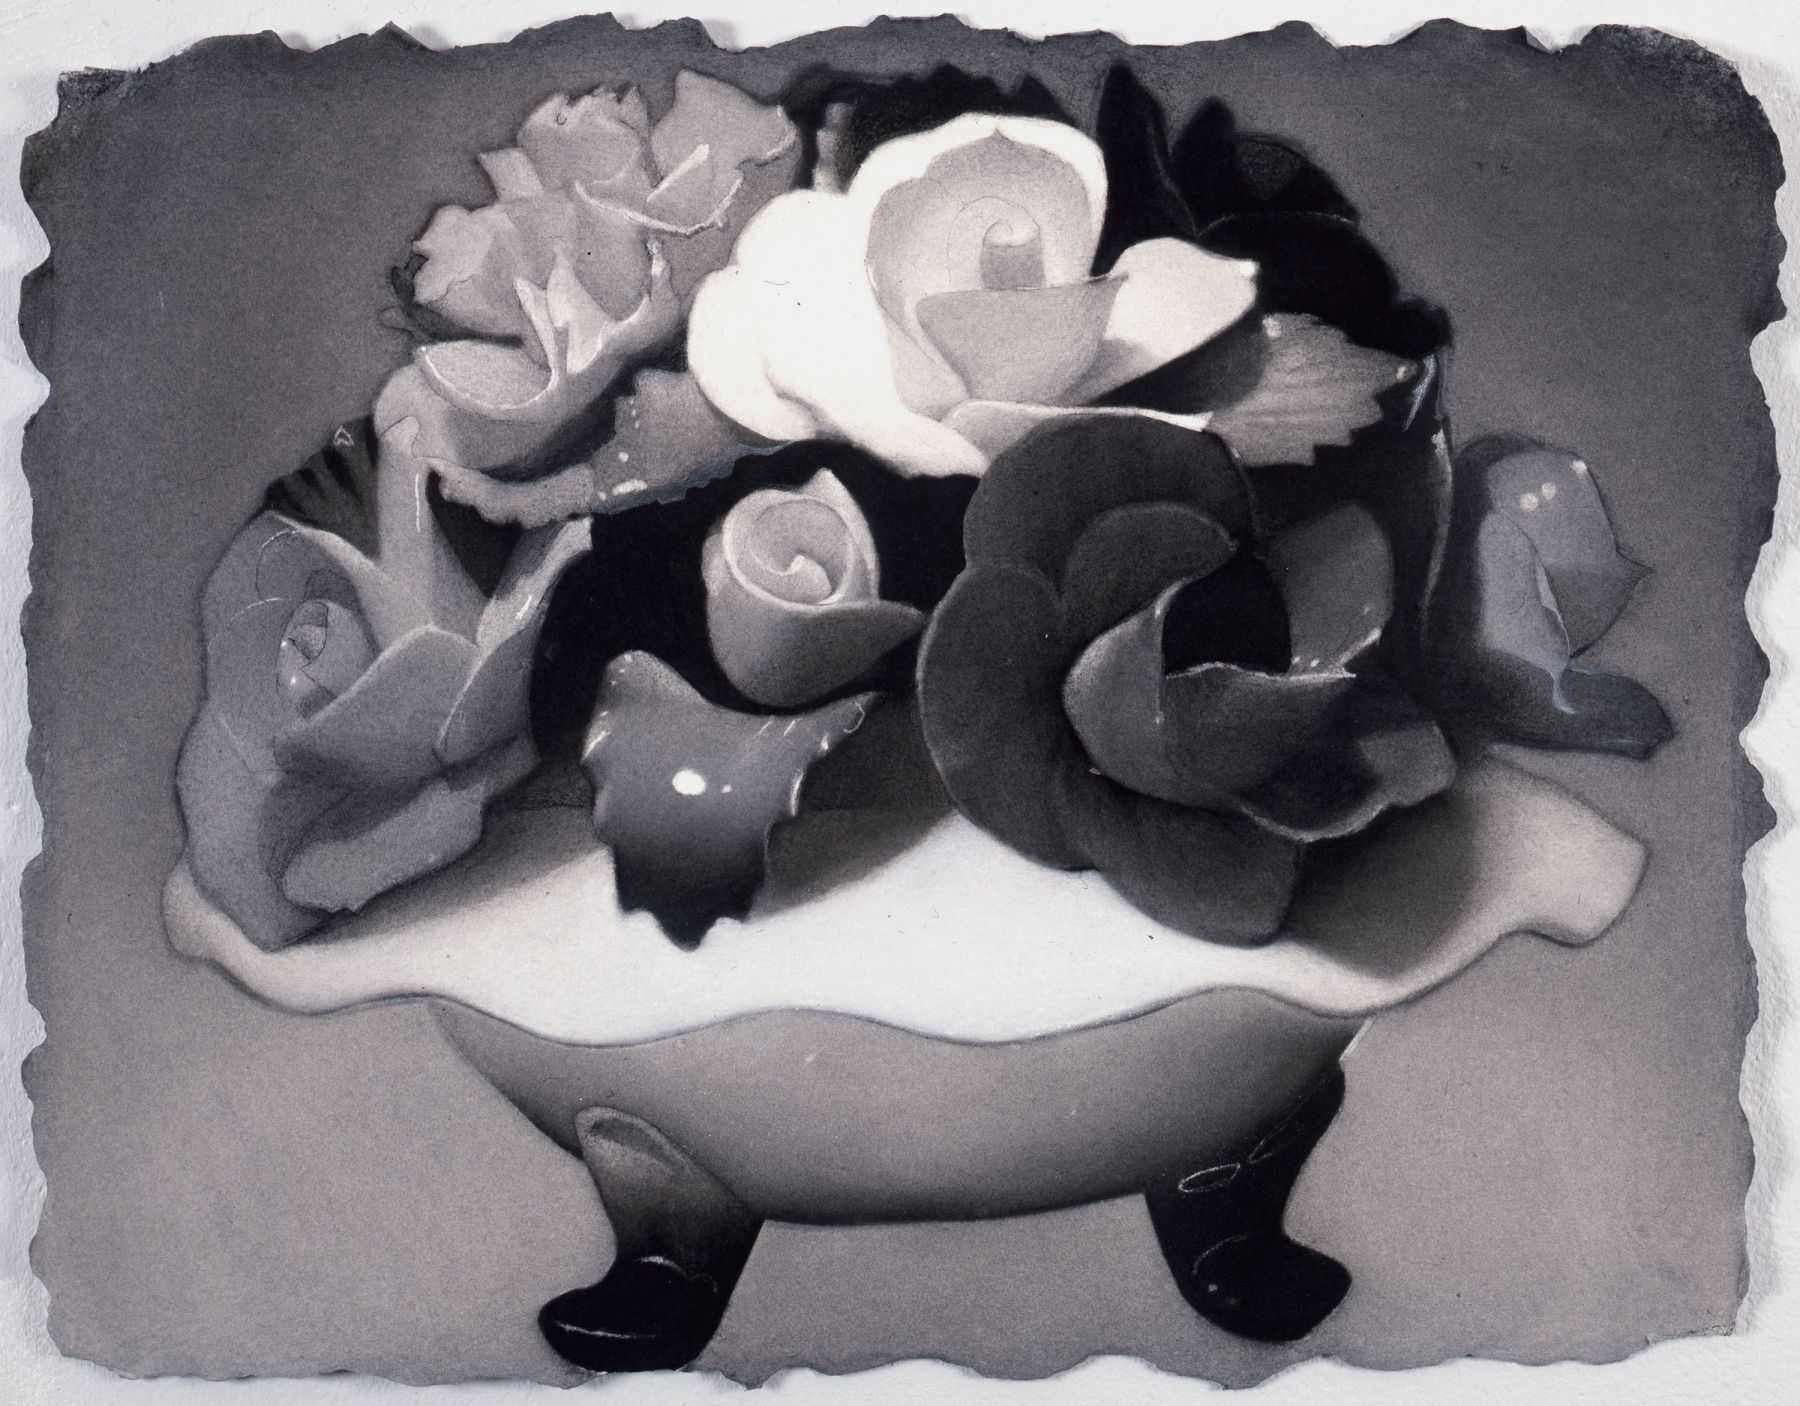 Susan Hauptman, Still Life (Rainbow's End, Staten Island No. 2), 2008-2009, charcoal on Twinrocker paper, 17 1/2 x 22 1/2 inches